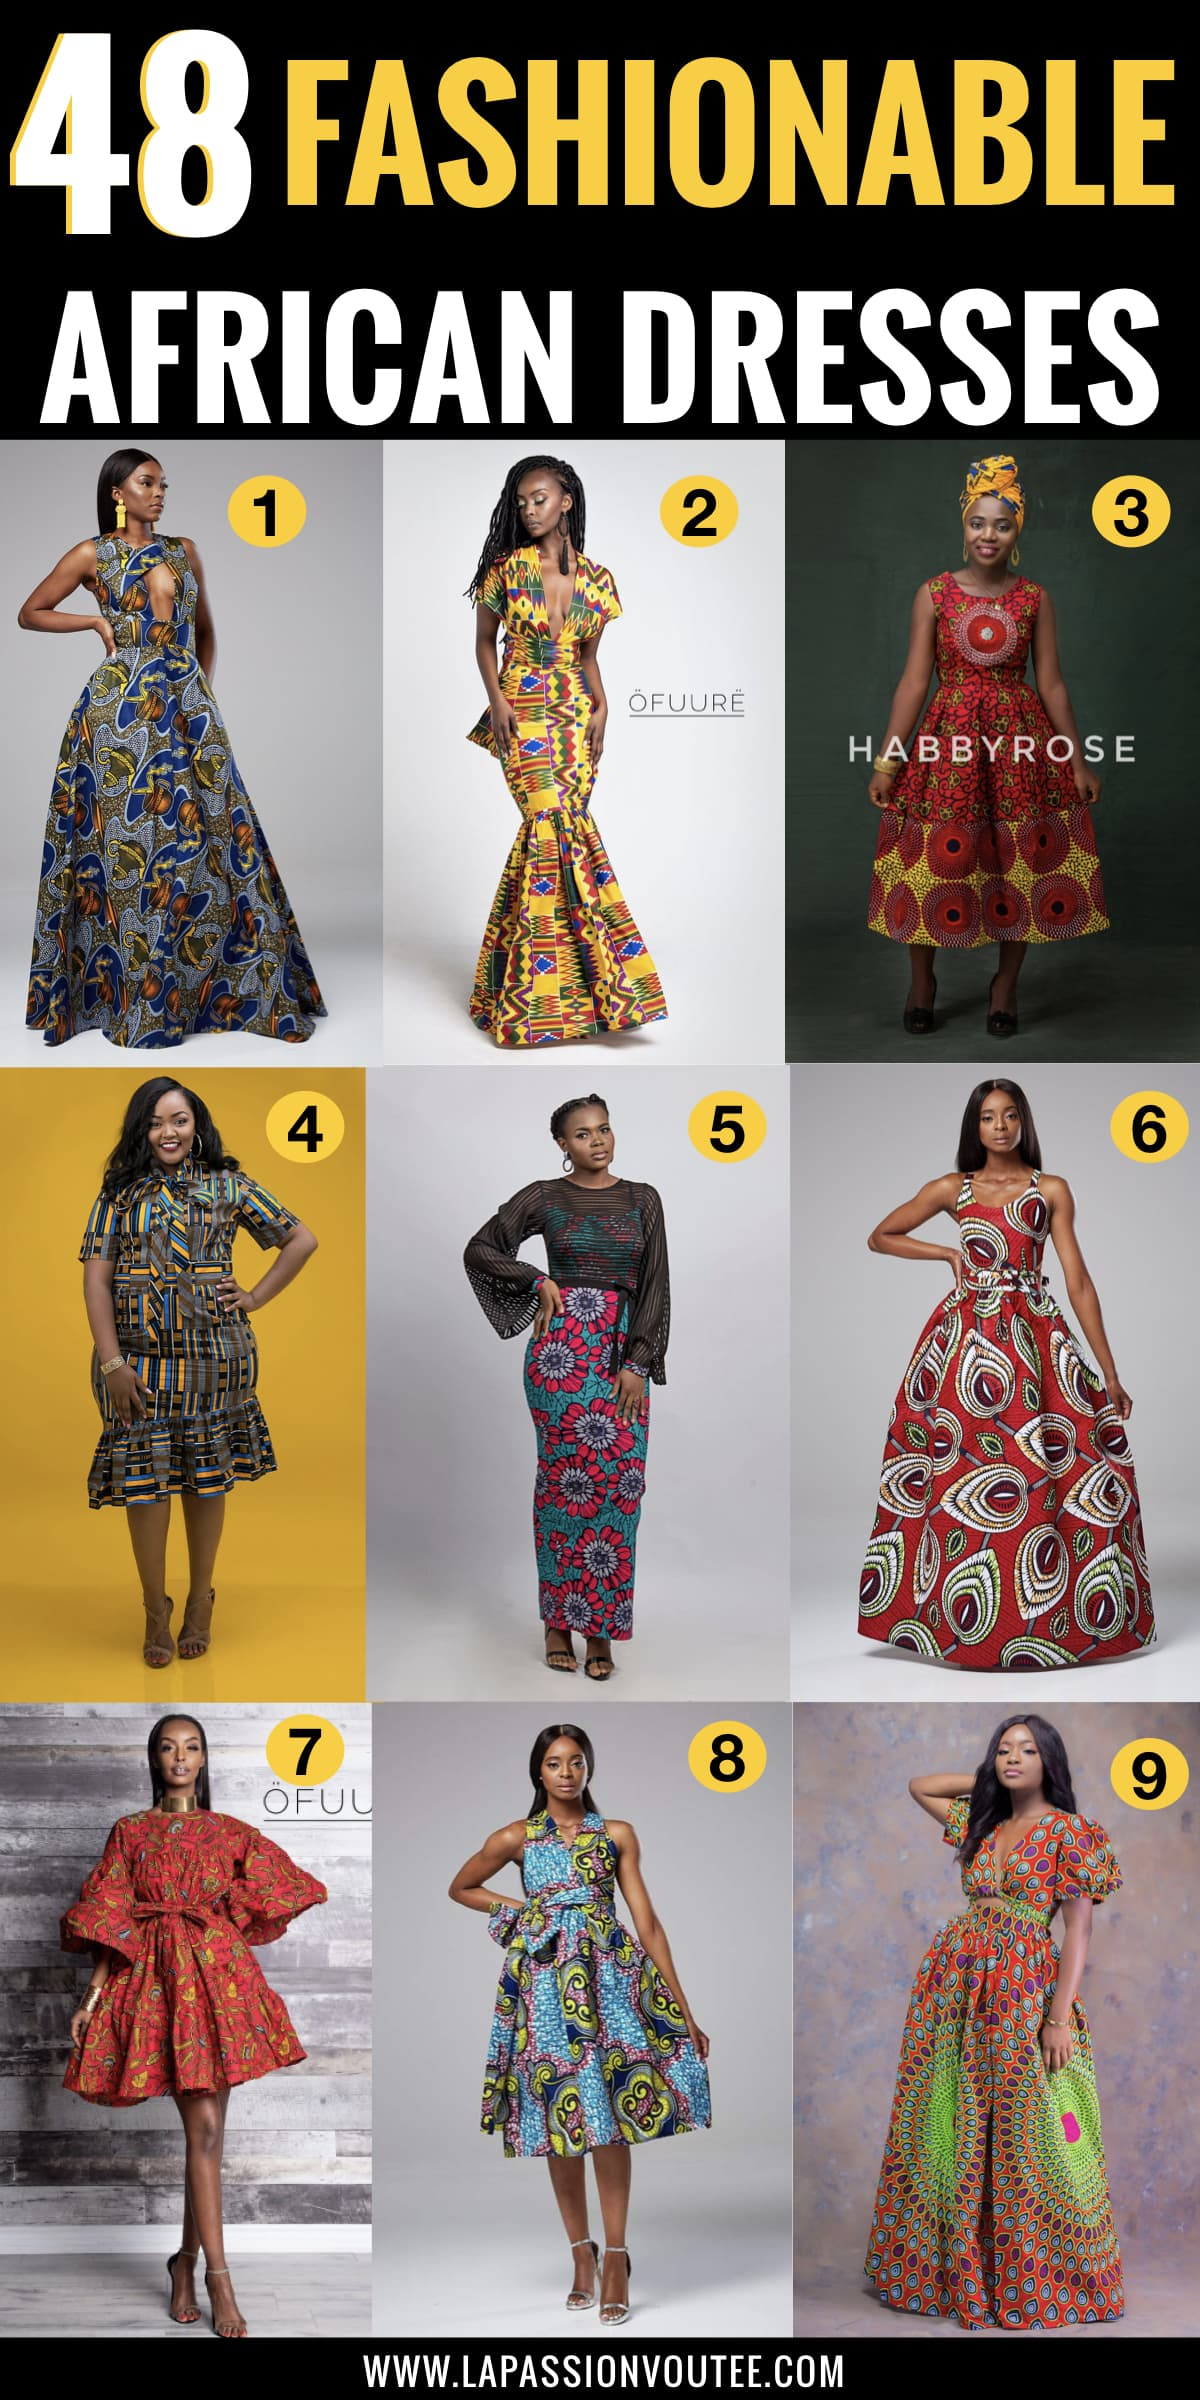 #ankarastyles #ankarafashion The ultimate roundup of the most-wanted African print dresses in 2019 plus tips on how to score these ankara dresses like maxi dresses, midi dresses, and tons more for way less so you get the most out of African print clothes.